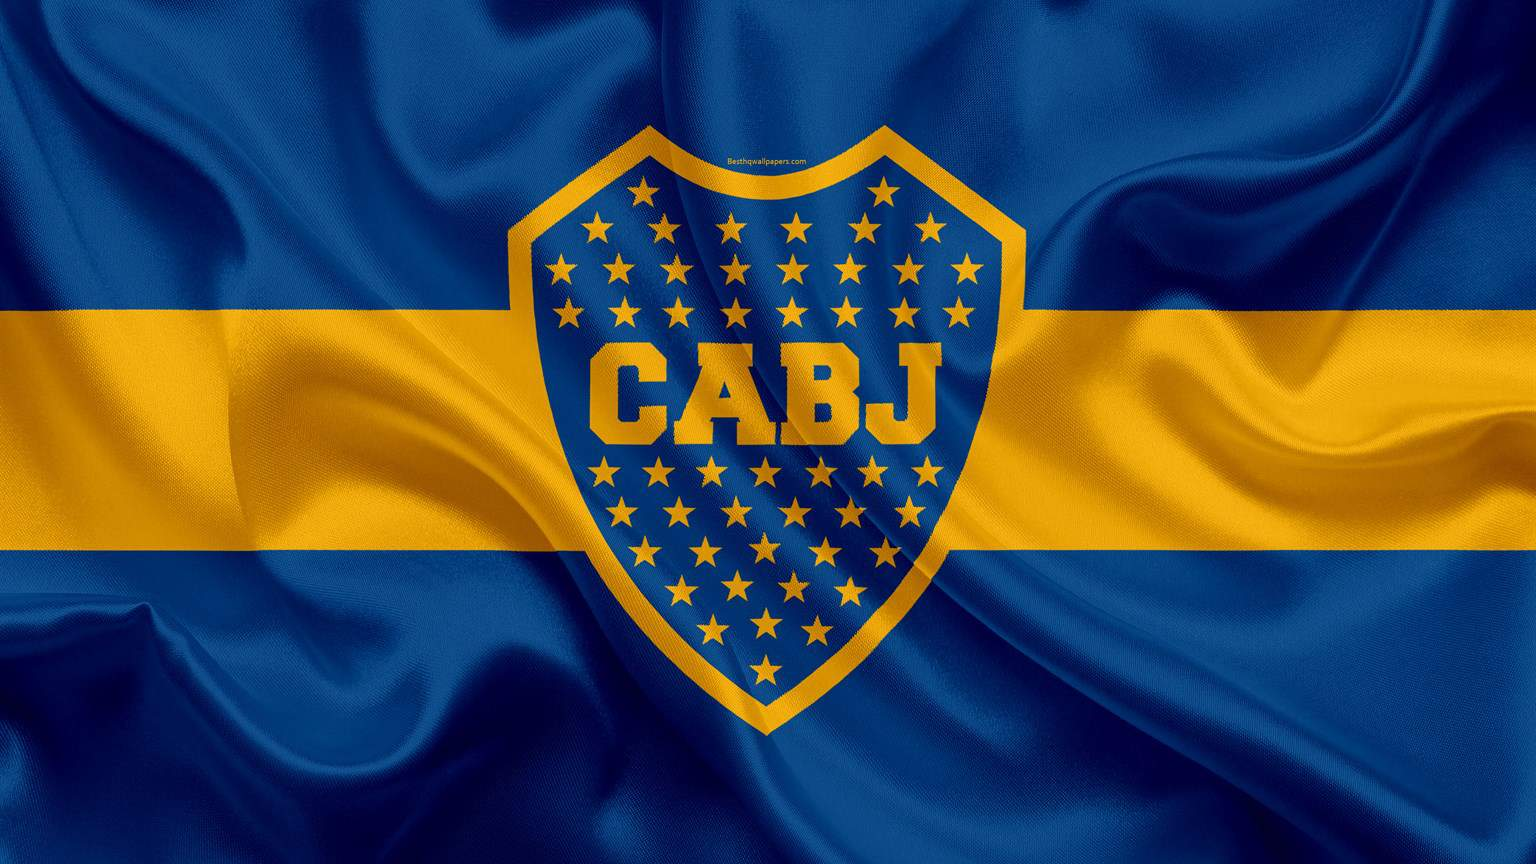 Argentina's Largest Soccer Team, Boca Juniors, Is Considering to Launch a Club NFT